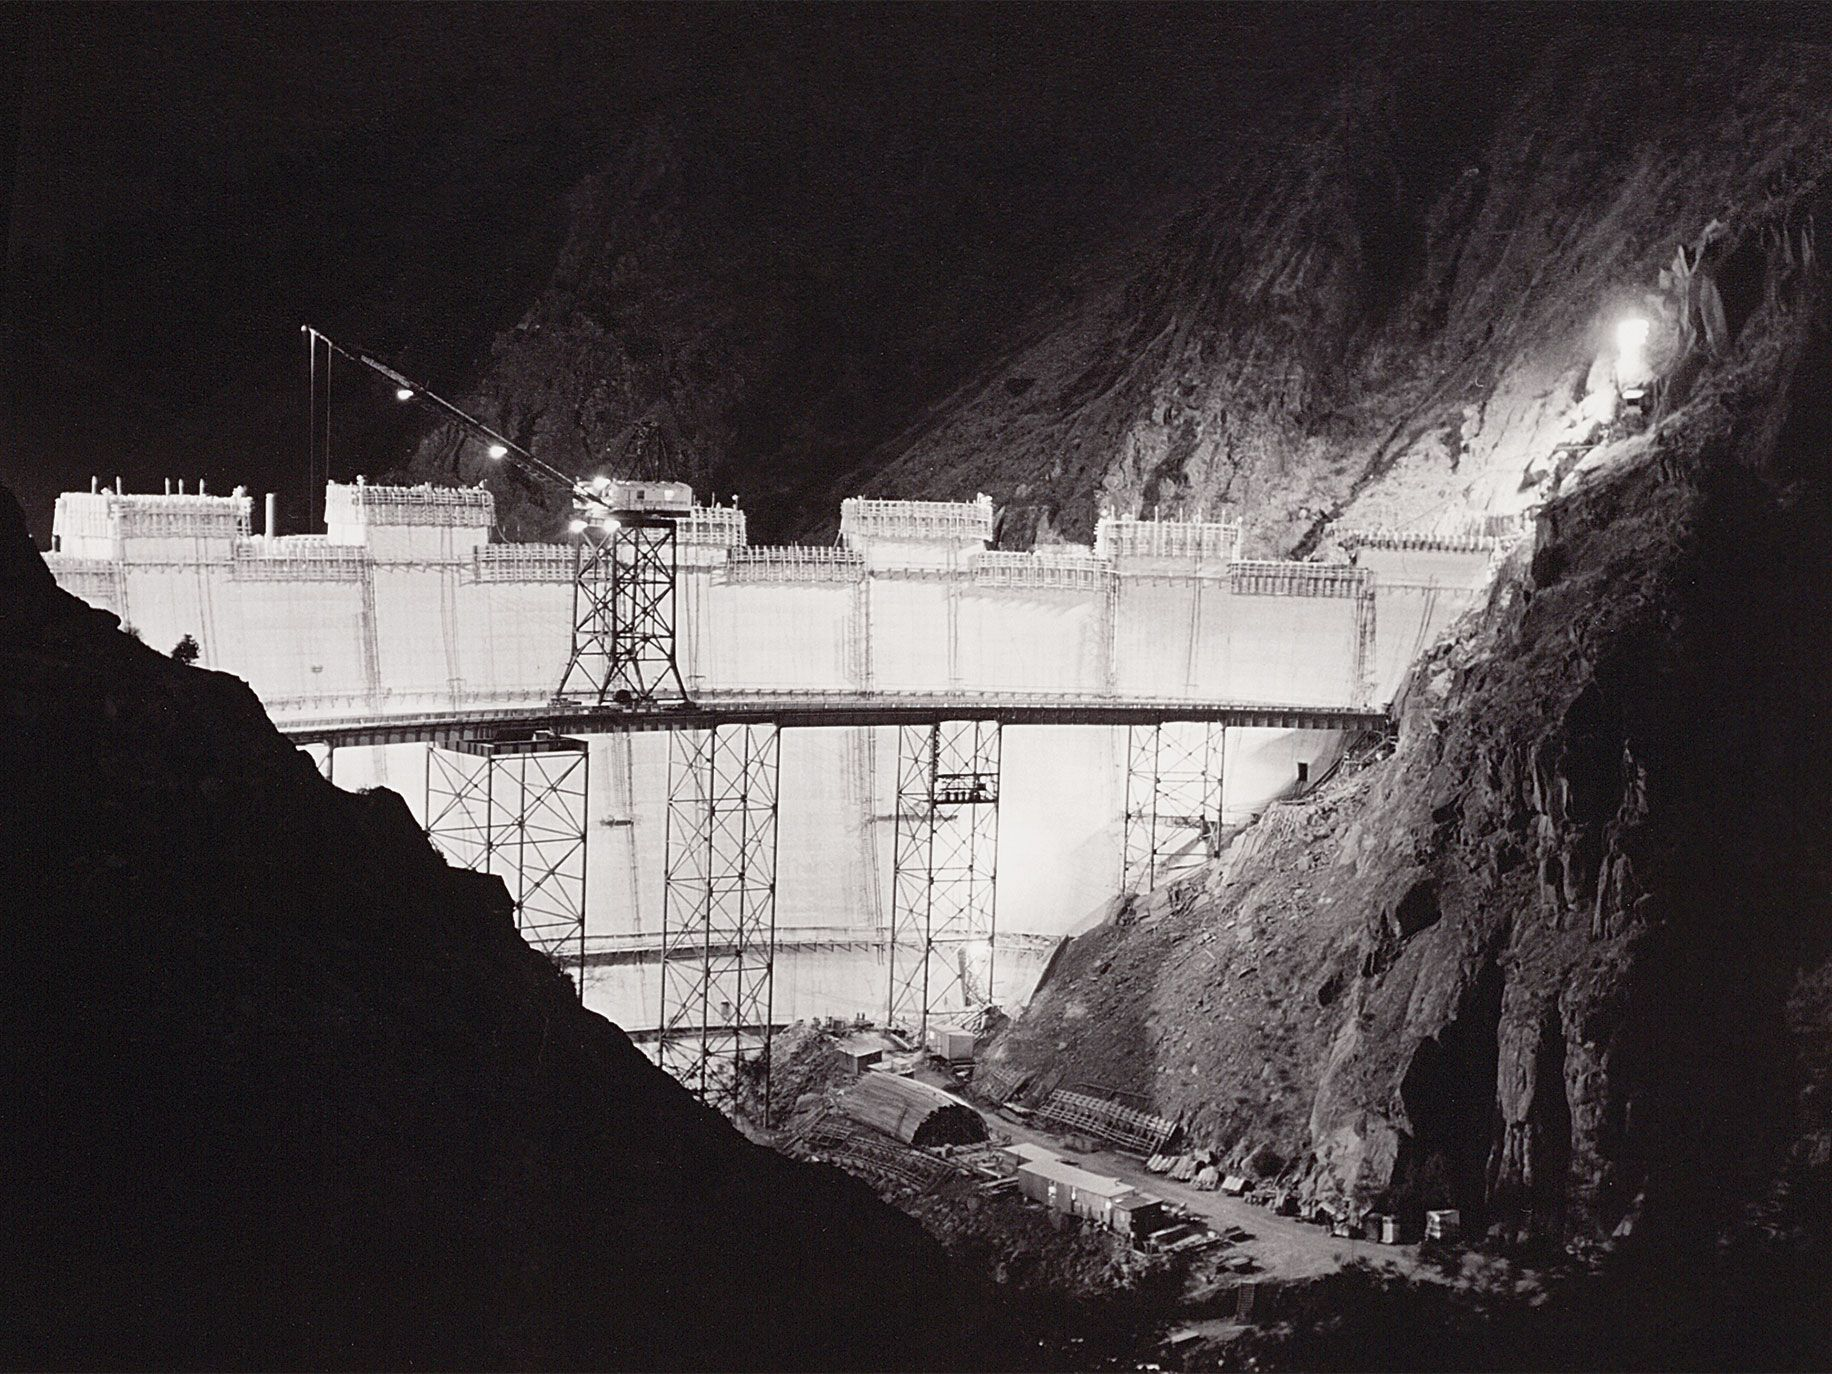 Monticello Dam by Dorothea Lange showcases the unfinished Monticello Dam at night, when it seemed to glow with malevolent light.